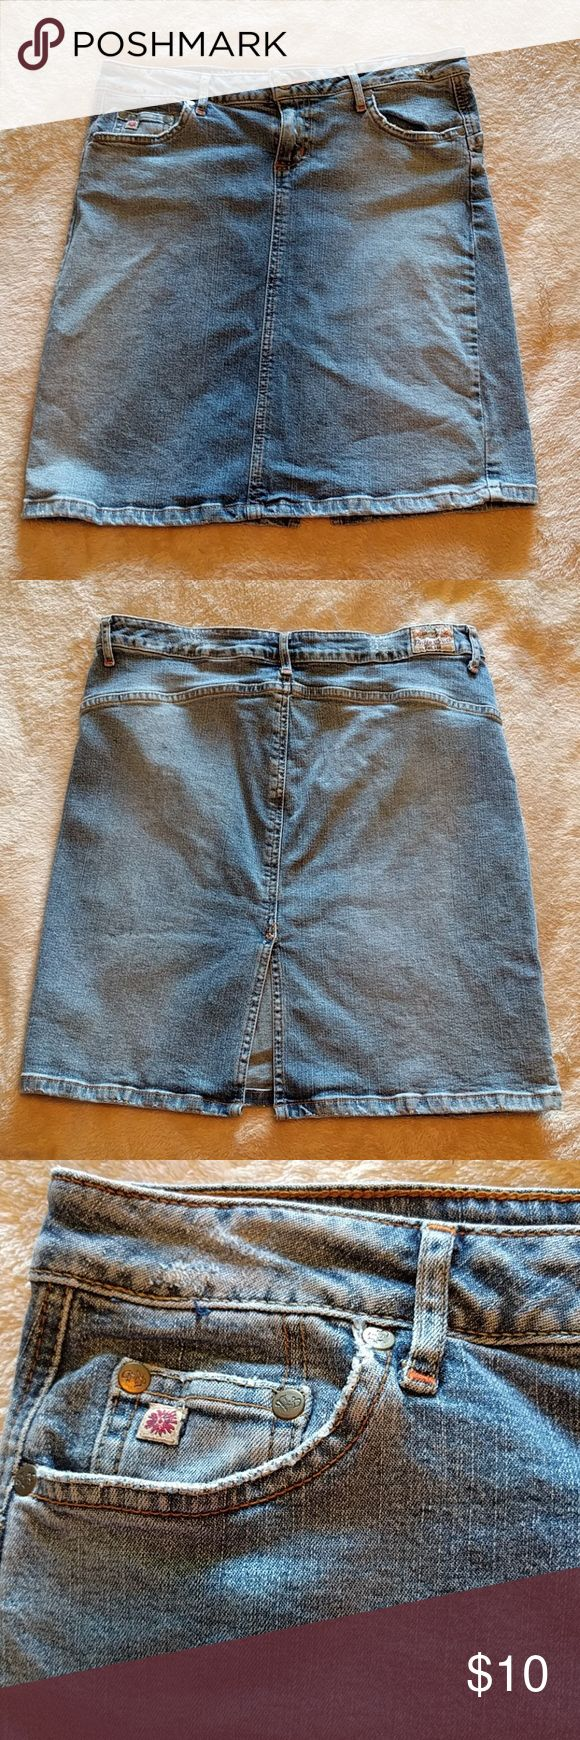 "PARIS BLUES distressed jean skirt Good used condition. Waist 15"" flat, 18"" length. Paris Blues Skirts Midi"